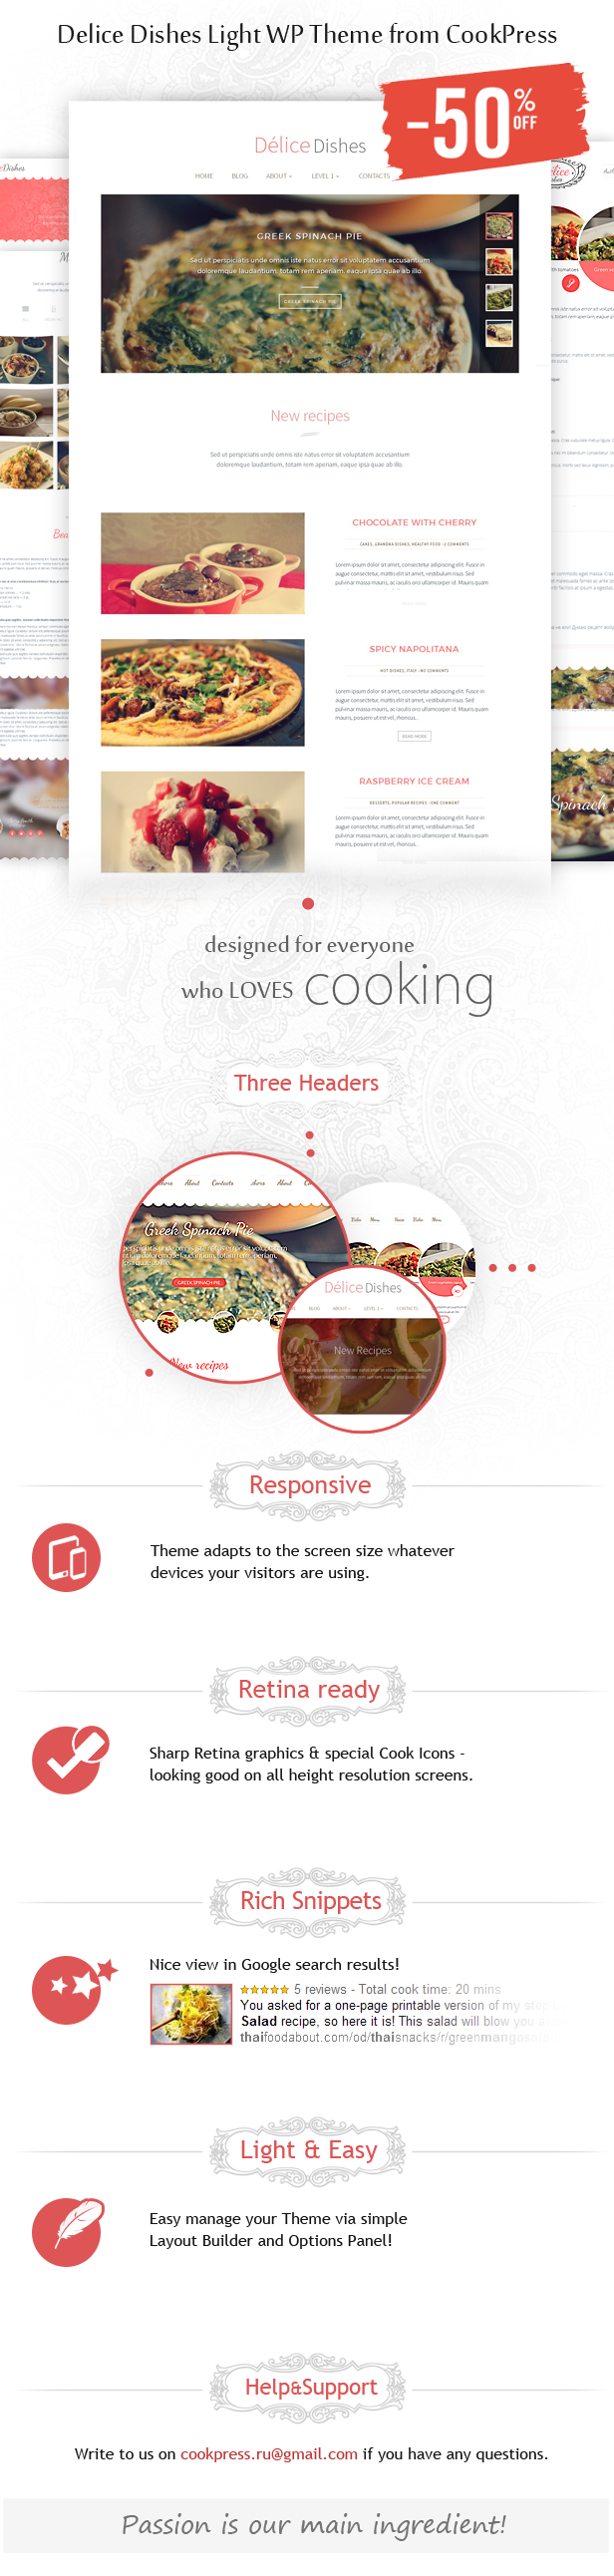 Delice Dishes Light WP Cook Theme • by CookPress - 1